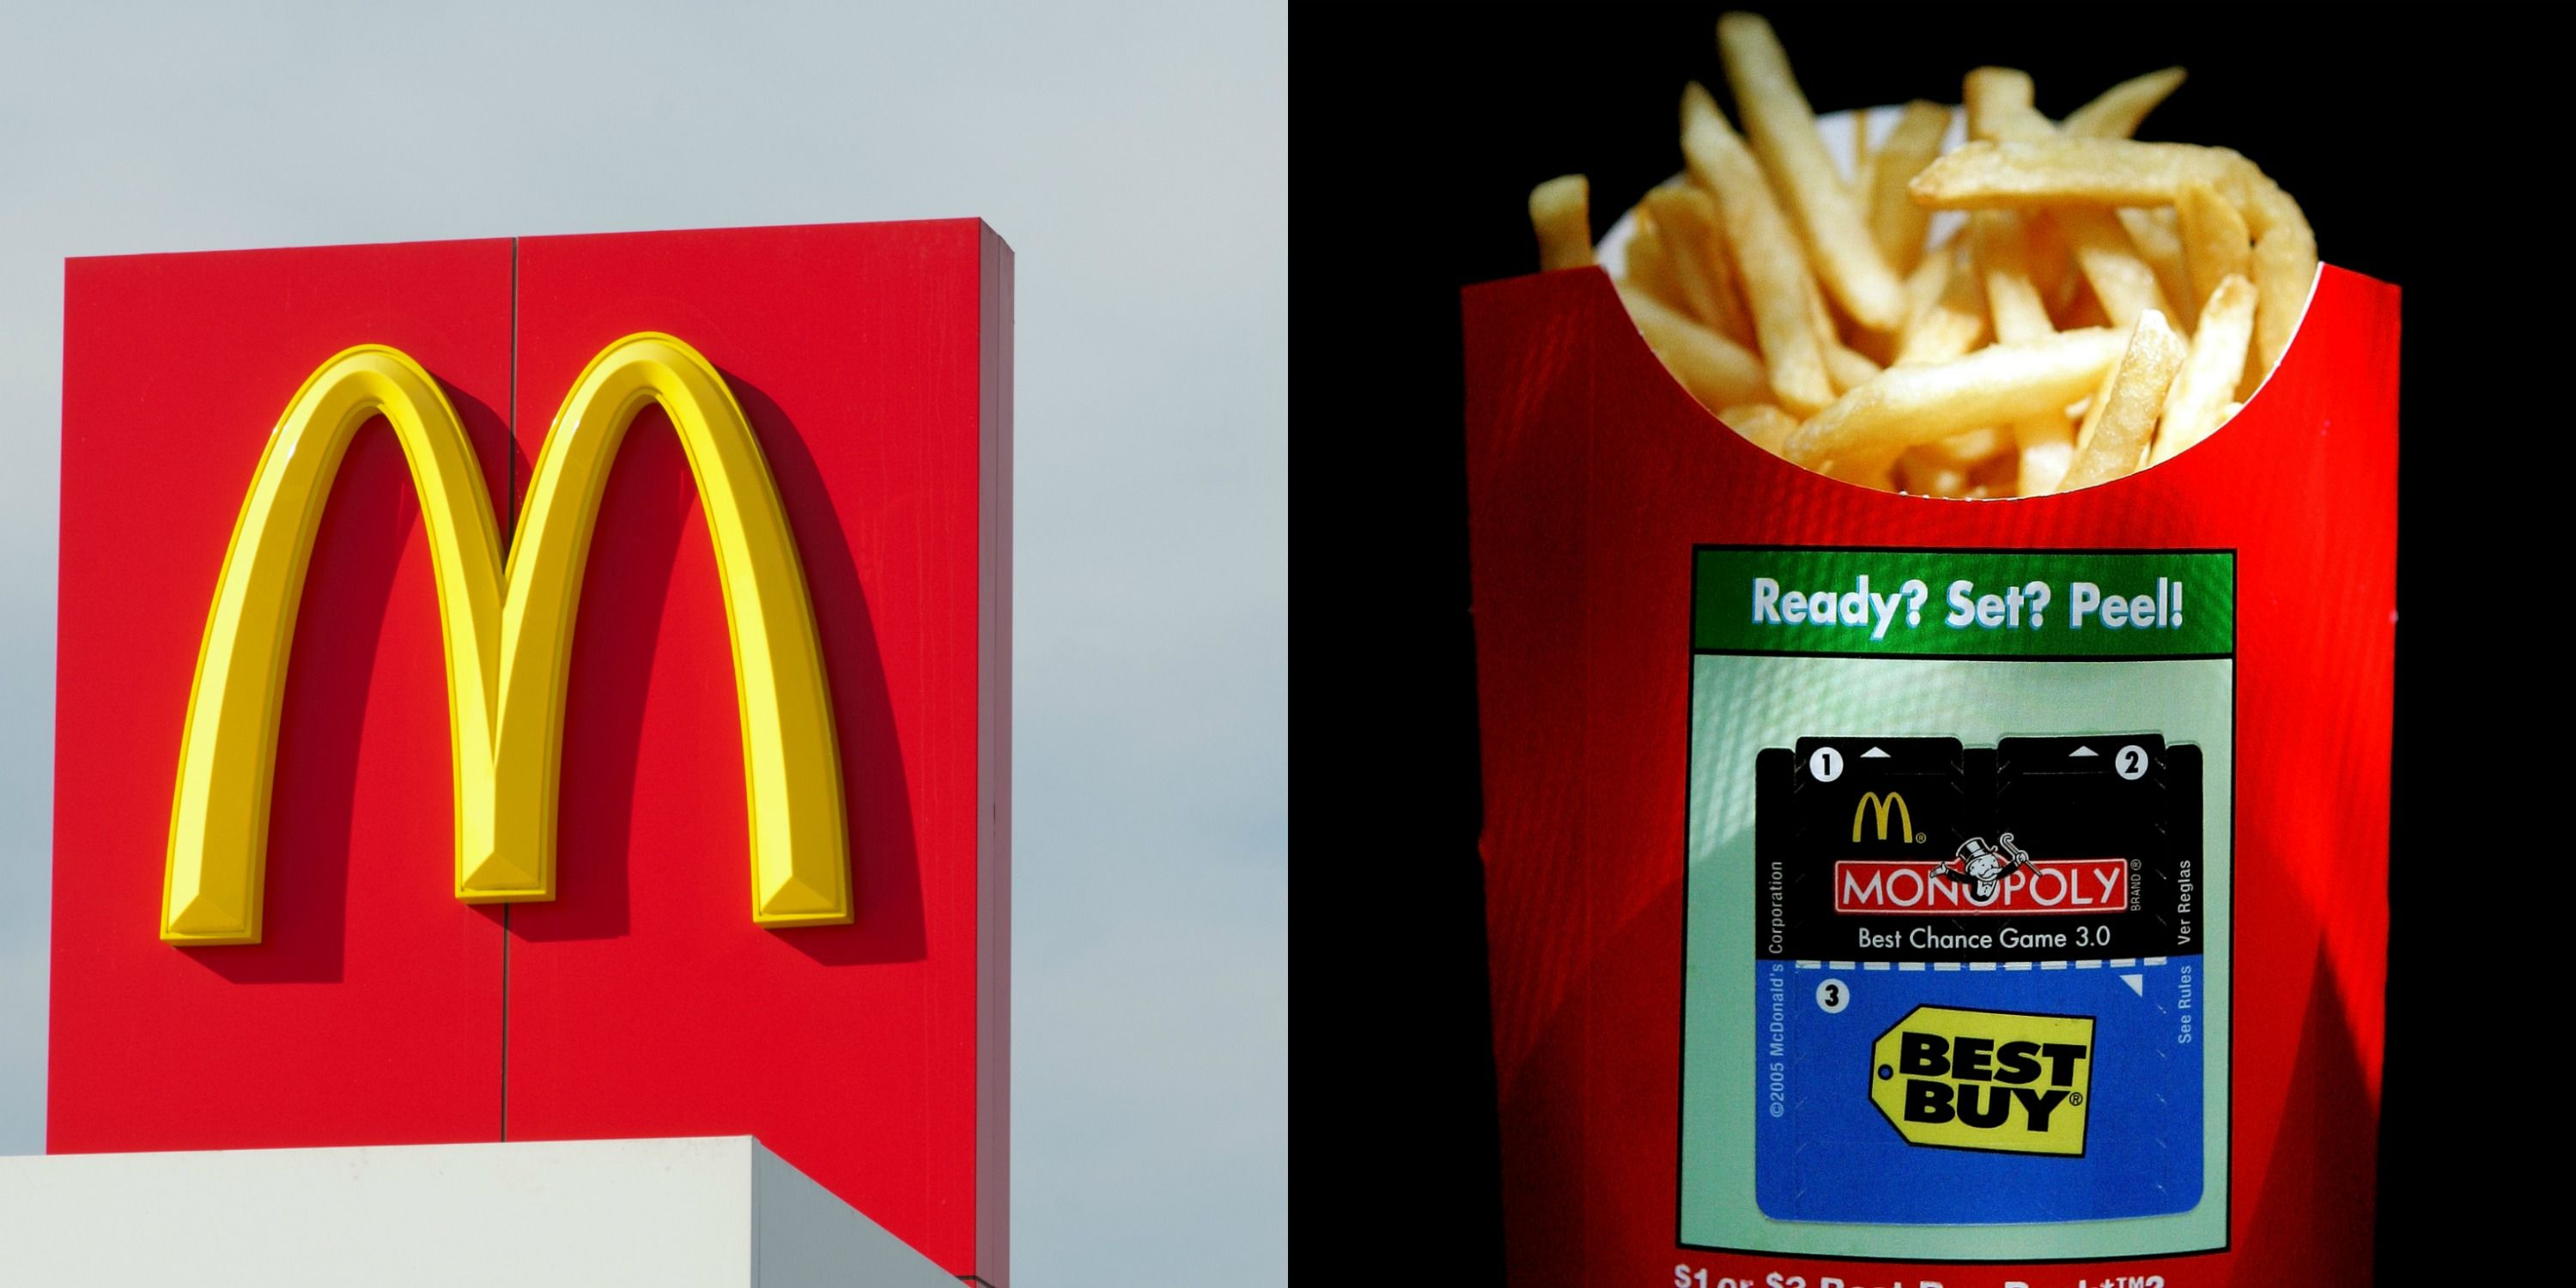 mcdonald's monopoly game was rigged, and twitter is obviously unhappy